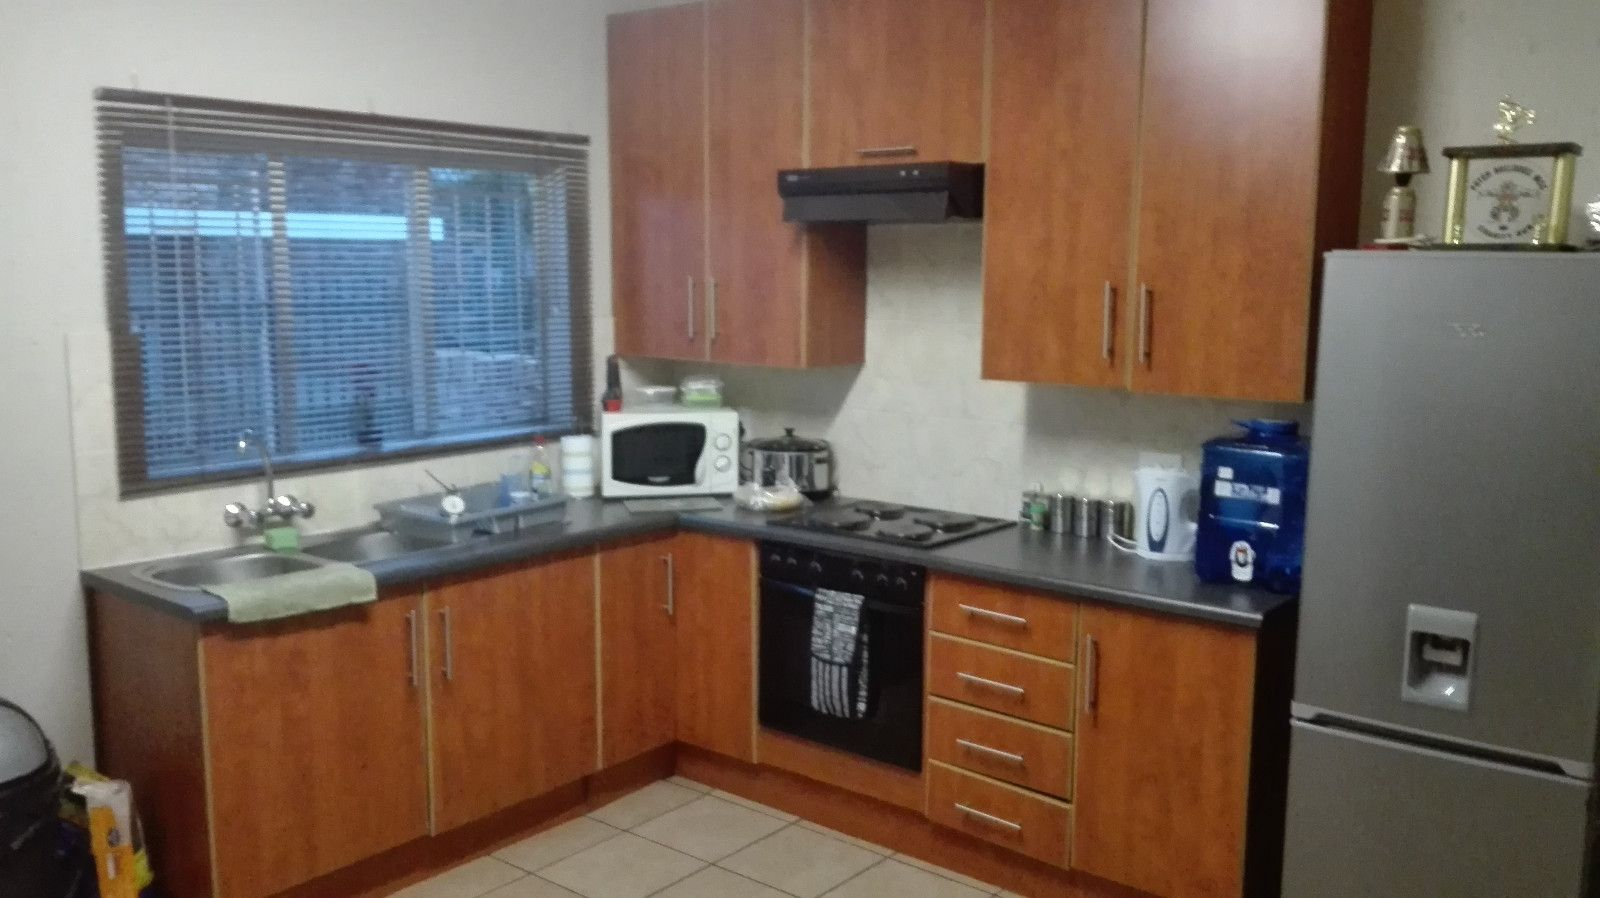 Baillie Park property for sale. Ref No: 13386611. Picture no 8